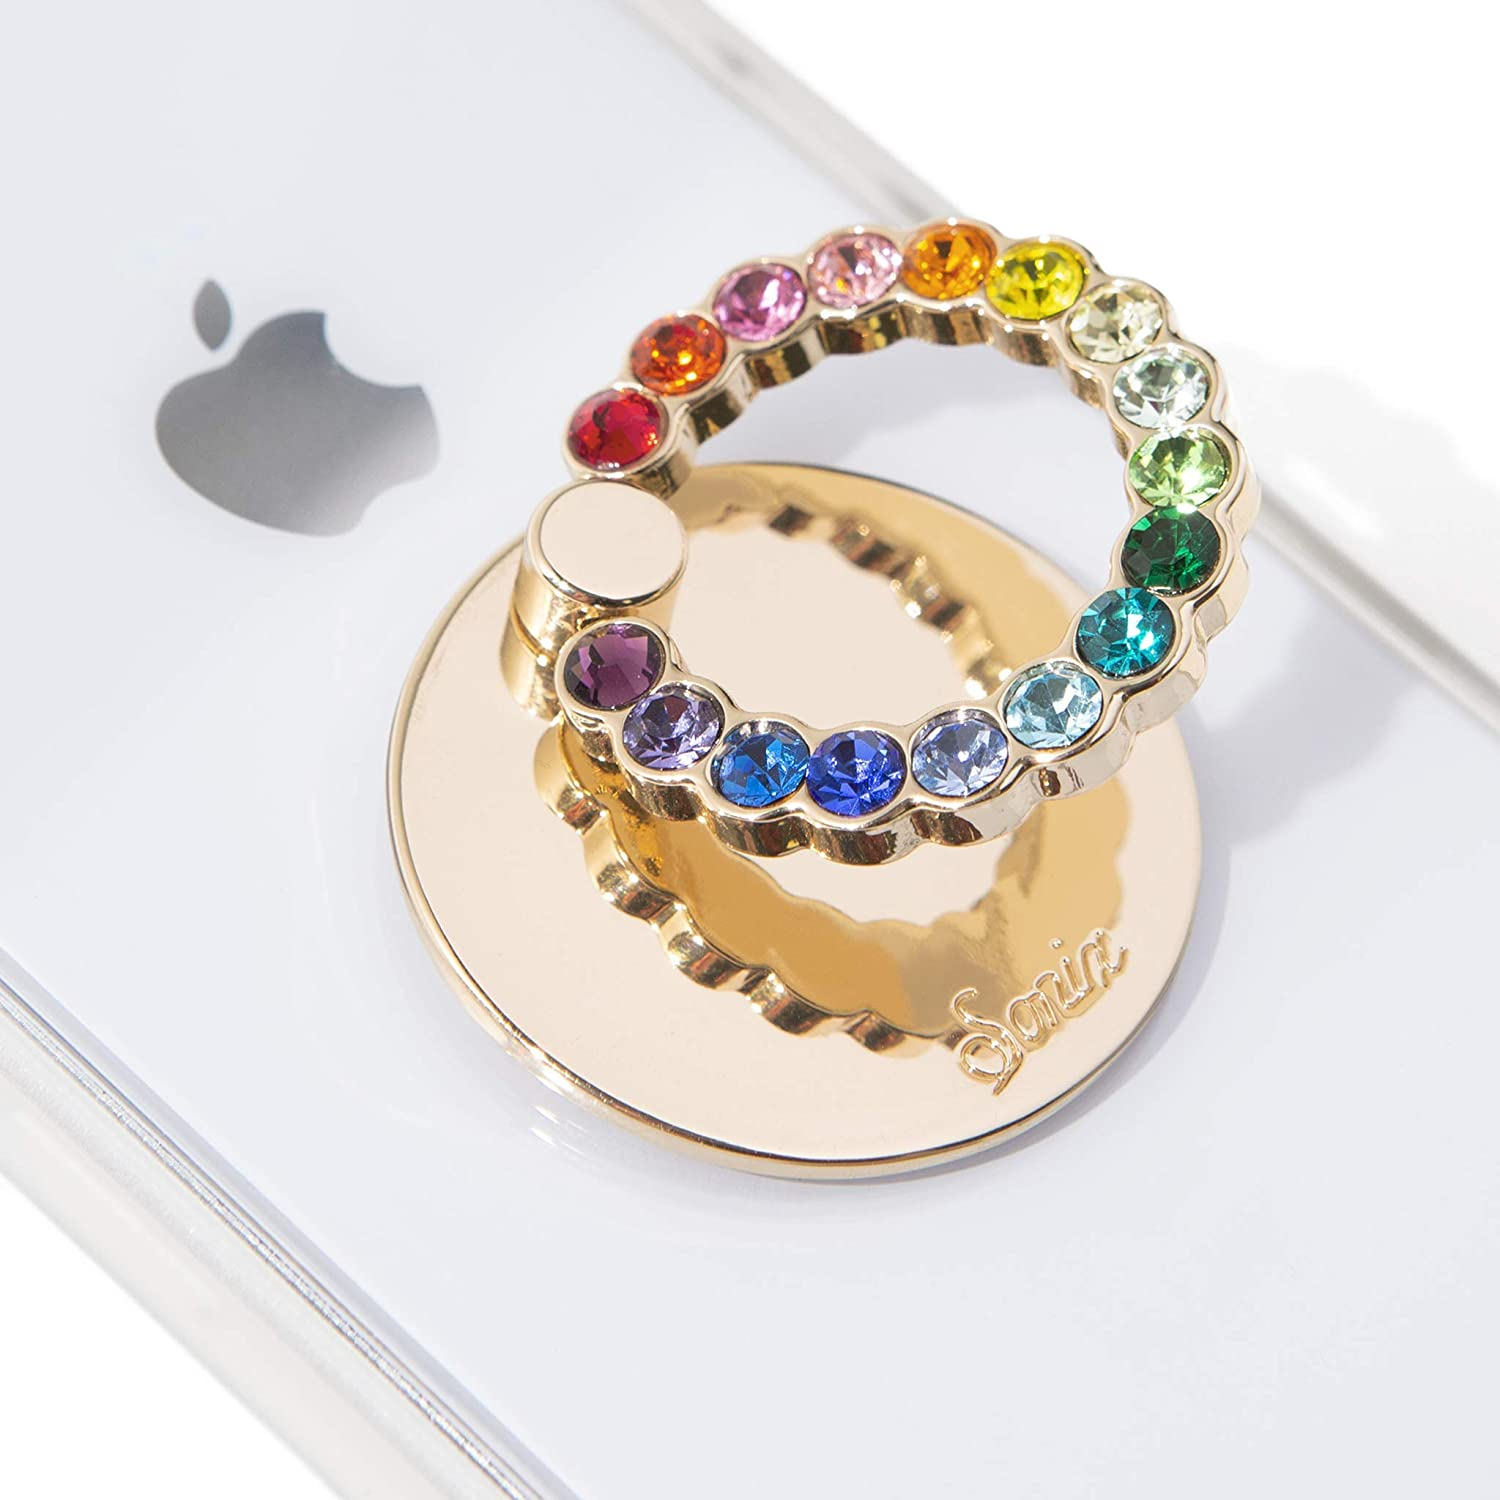 Embellished Crystal Rhinestone Phone Ring and Stand